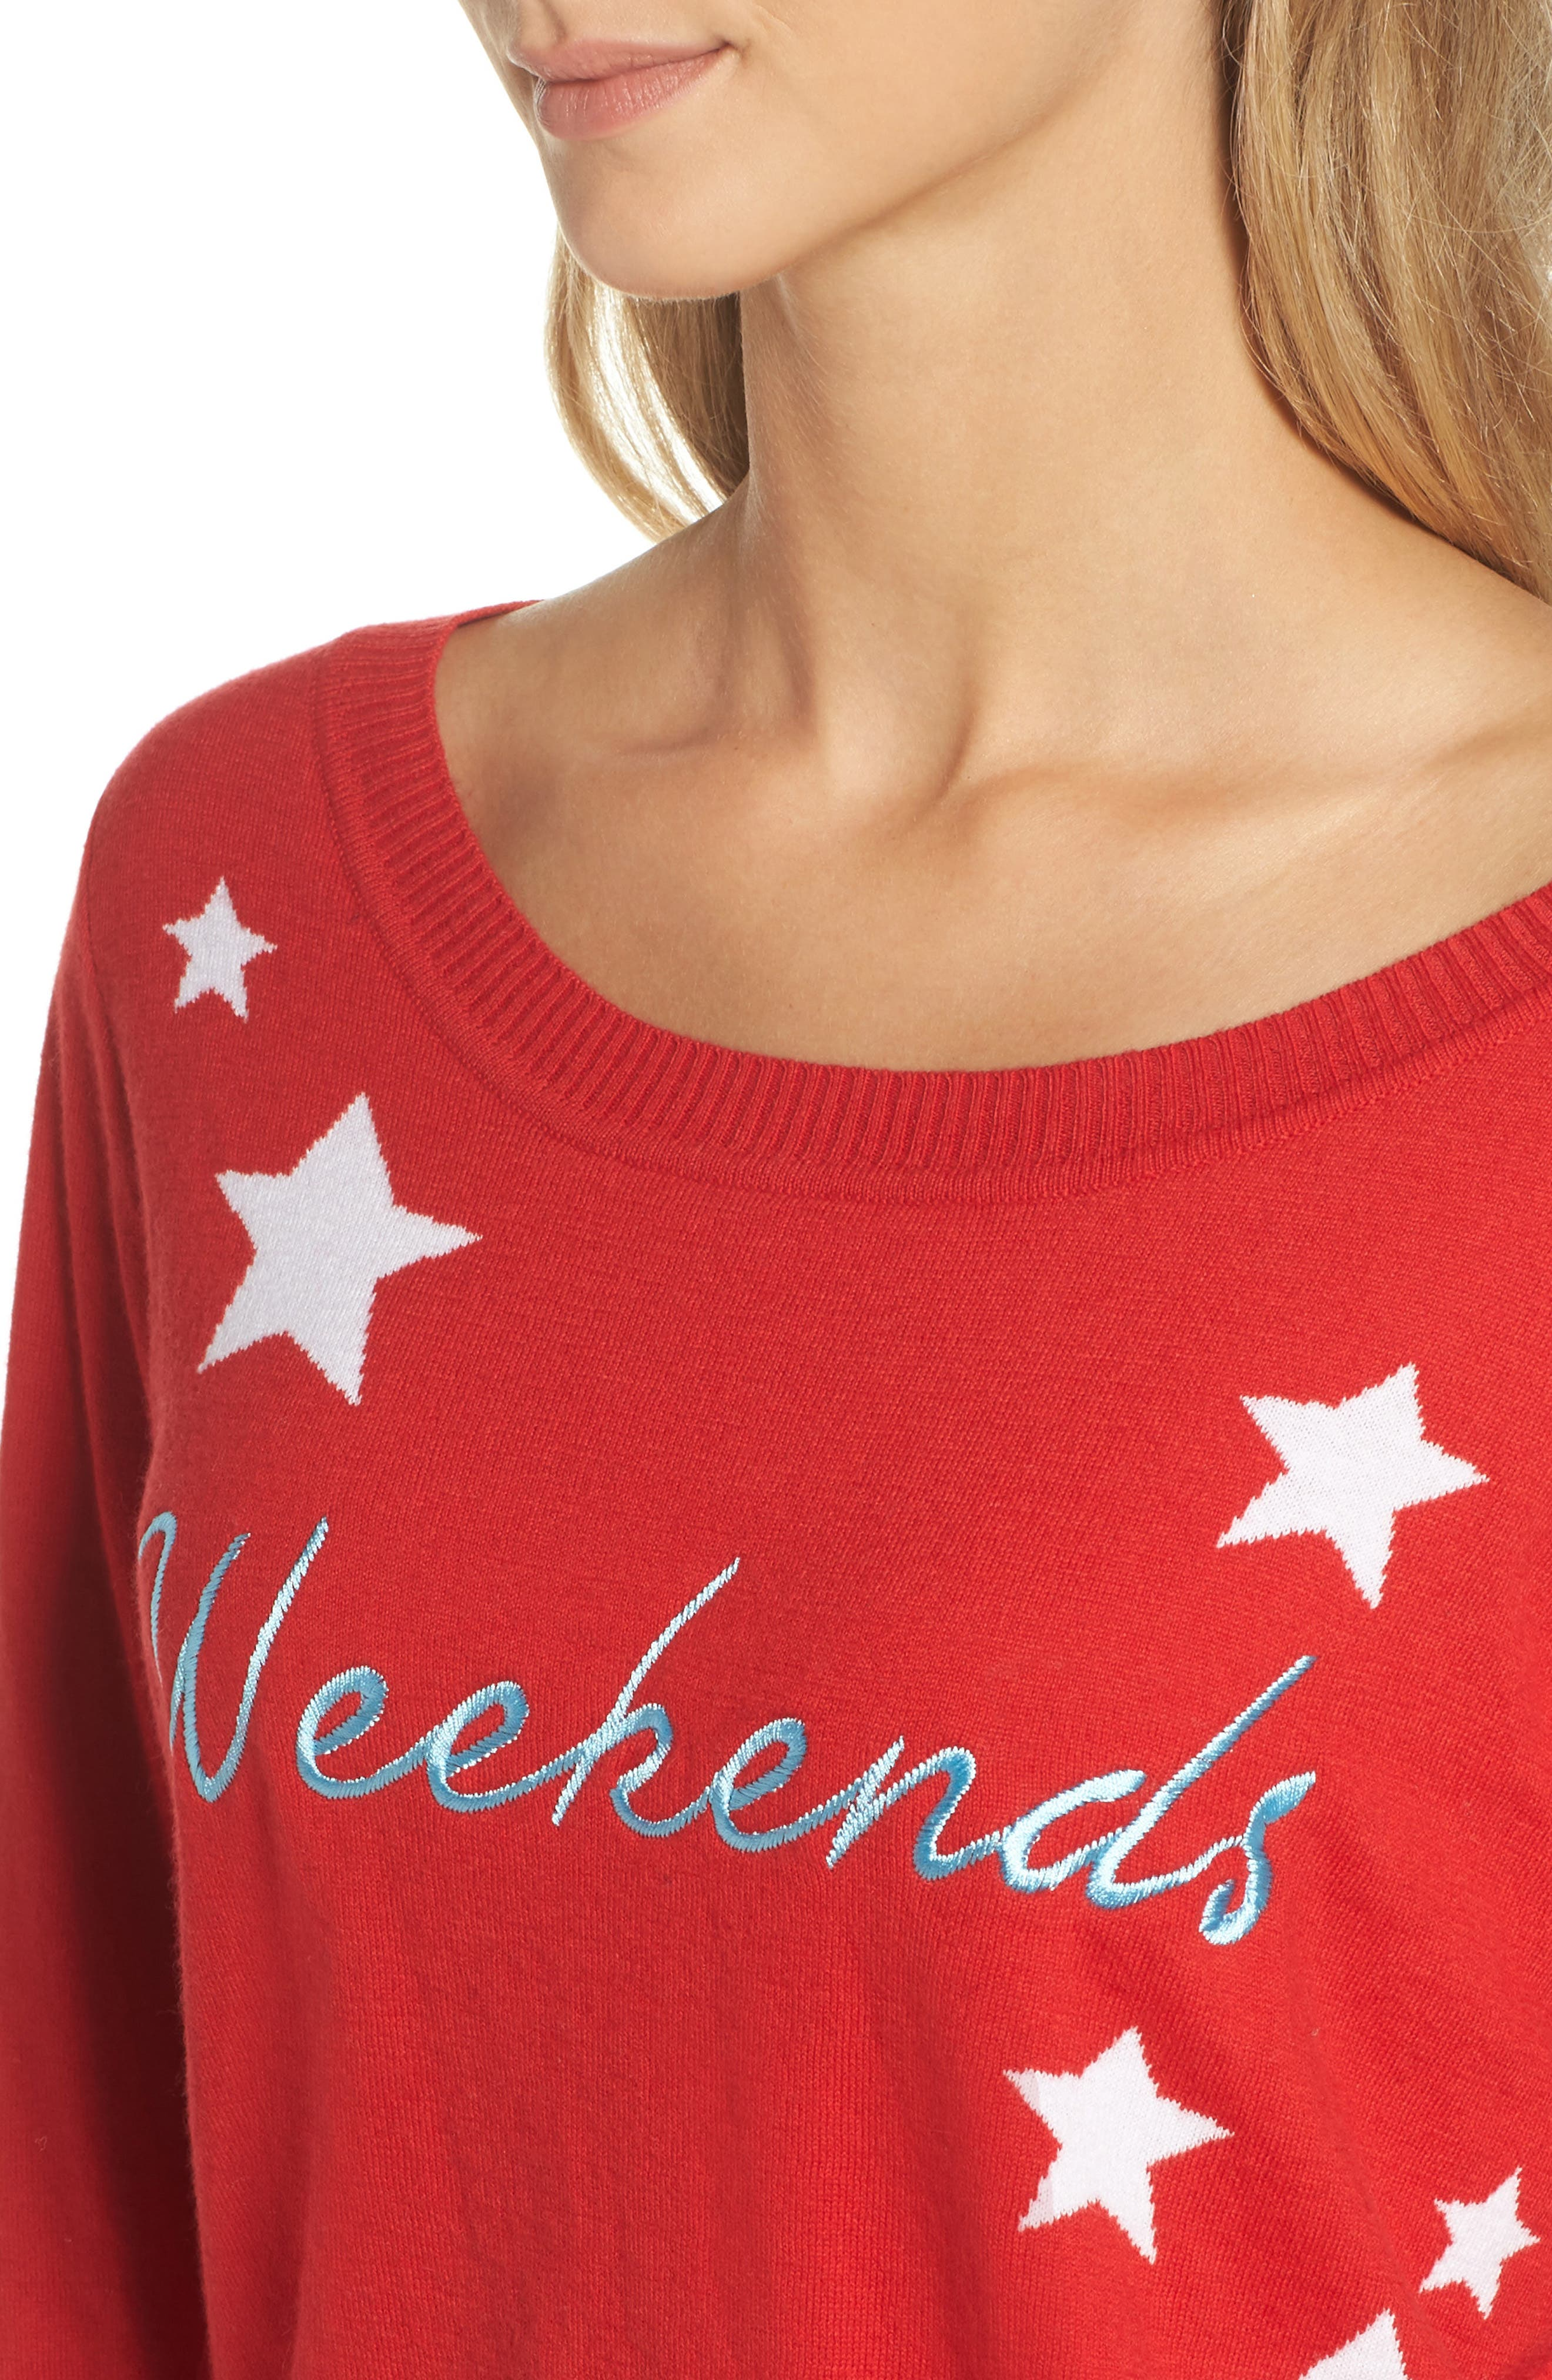 Weekends Intarsia Sweater,                             Alternate thumbnail 4, color,                             608